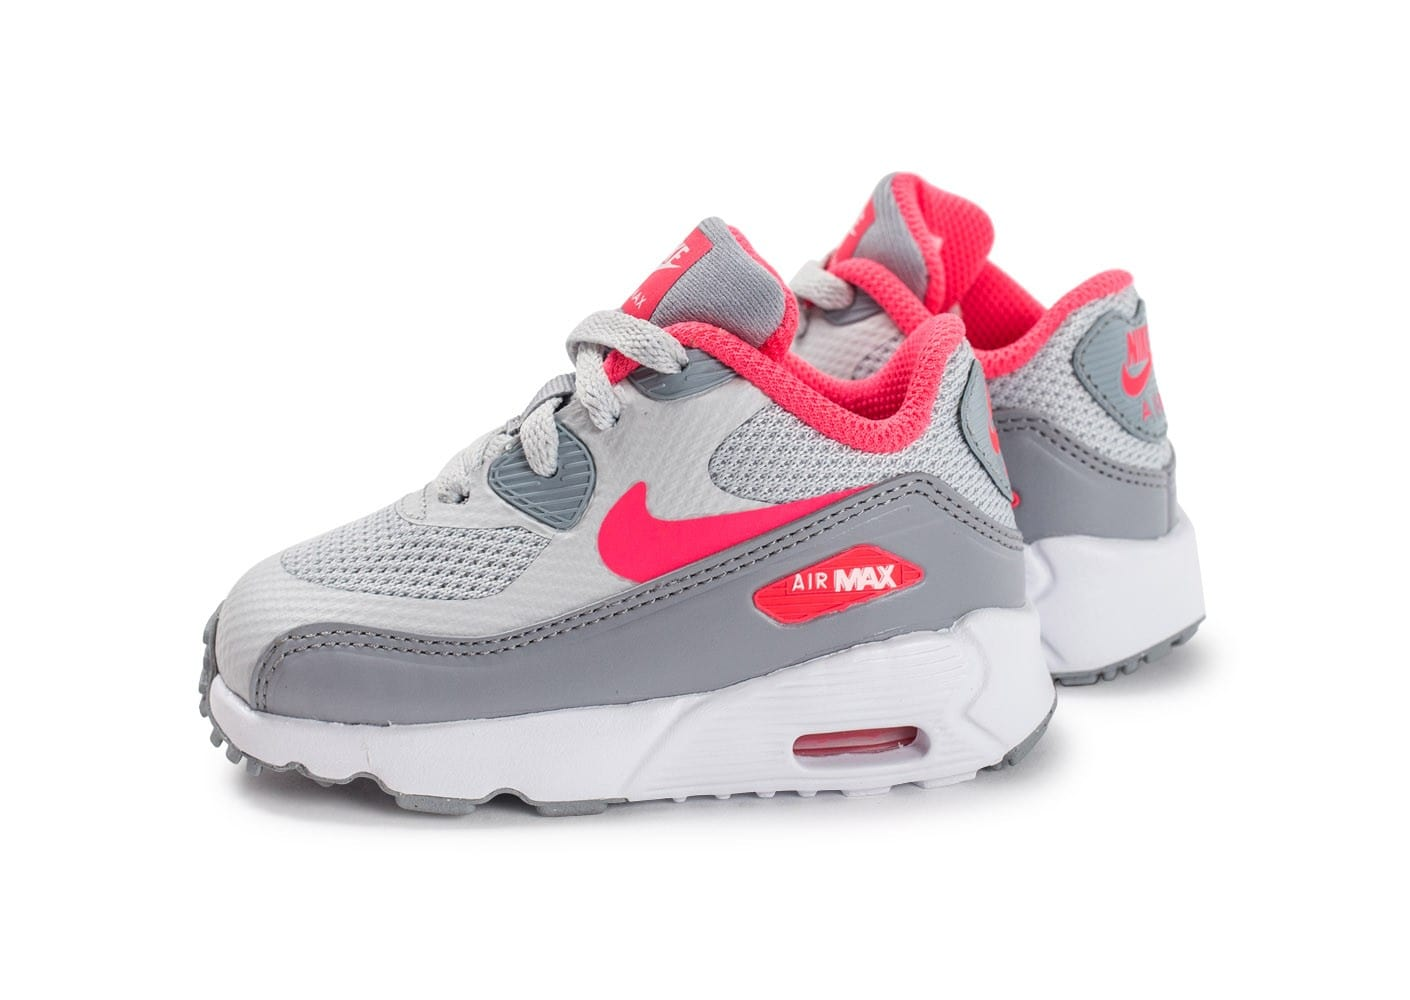 nike air max 90 ultra b b grise et rose chaussures. Black Bedroom Furniture Sets. Home Design Ideas